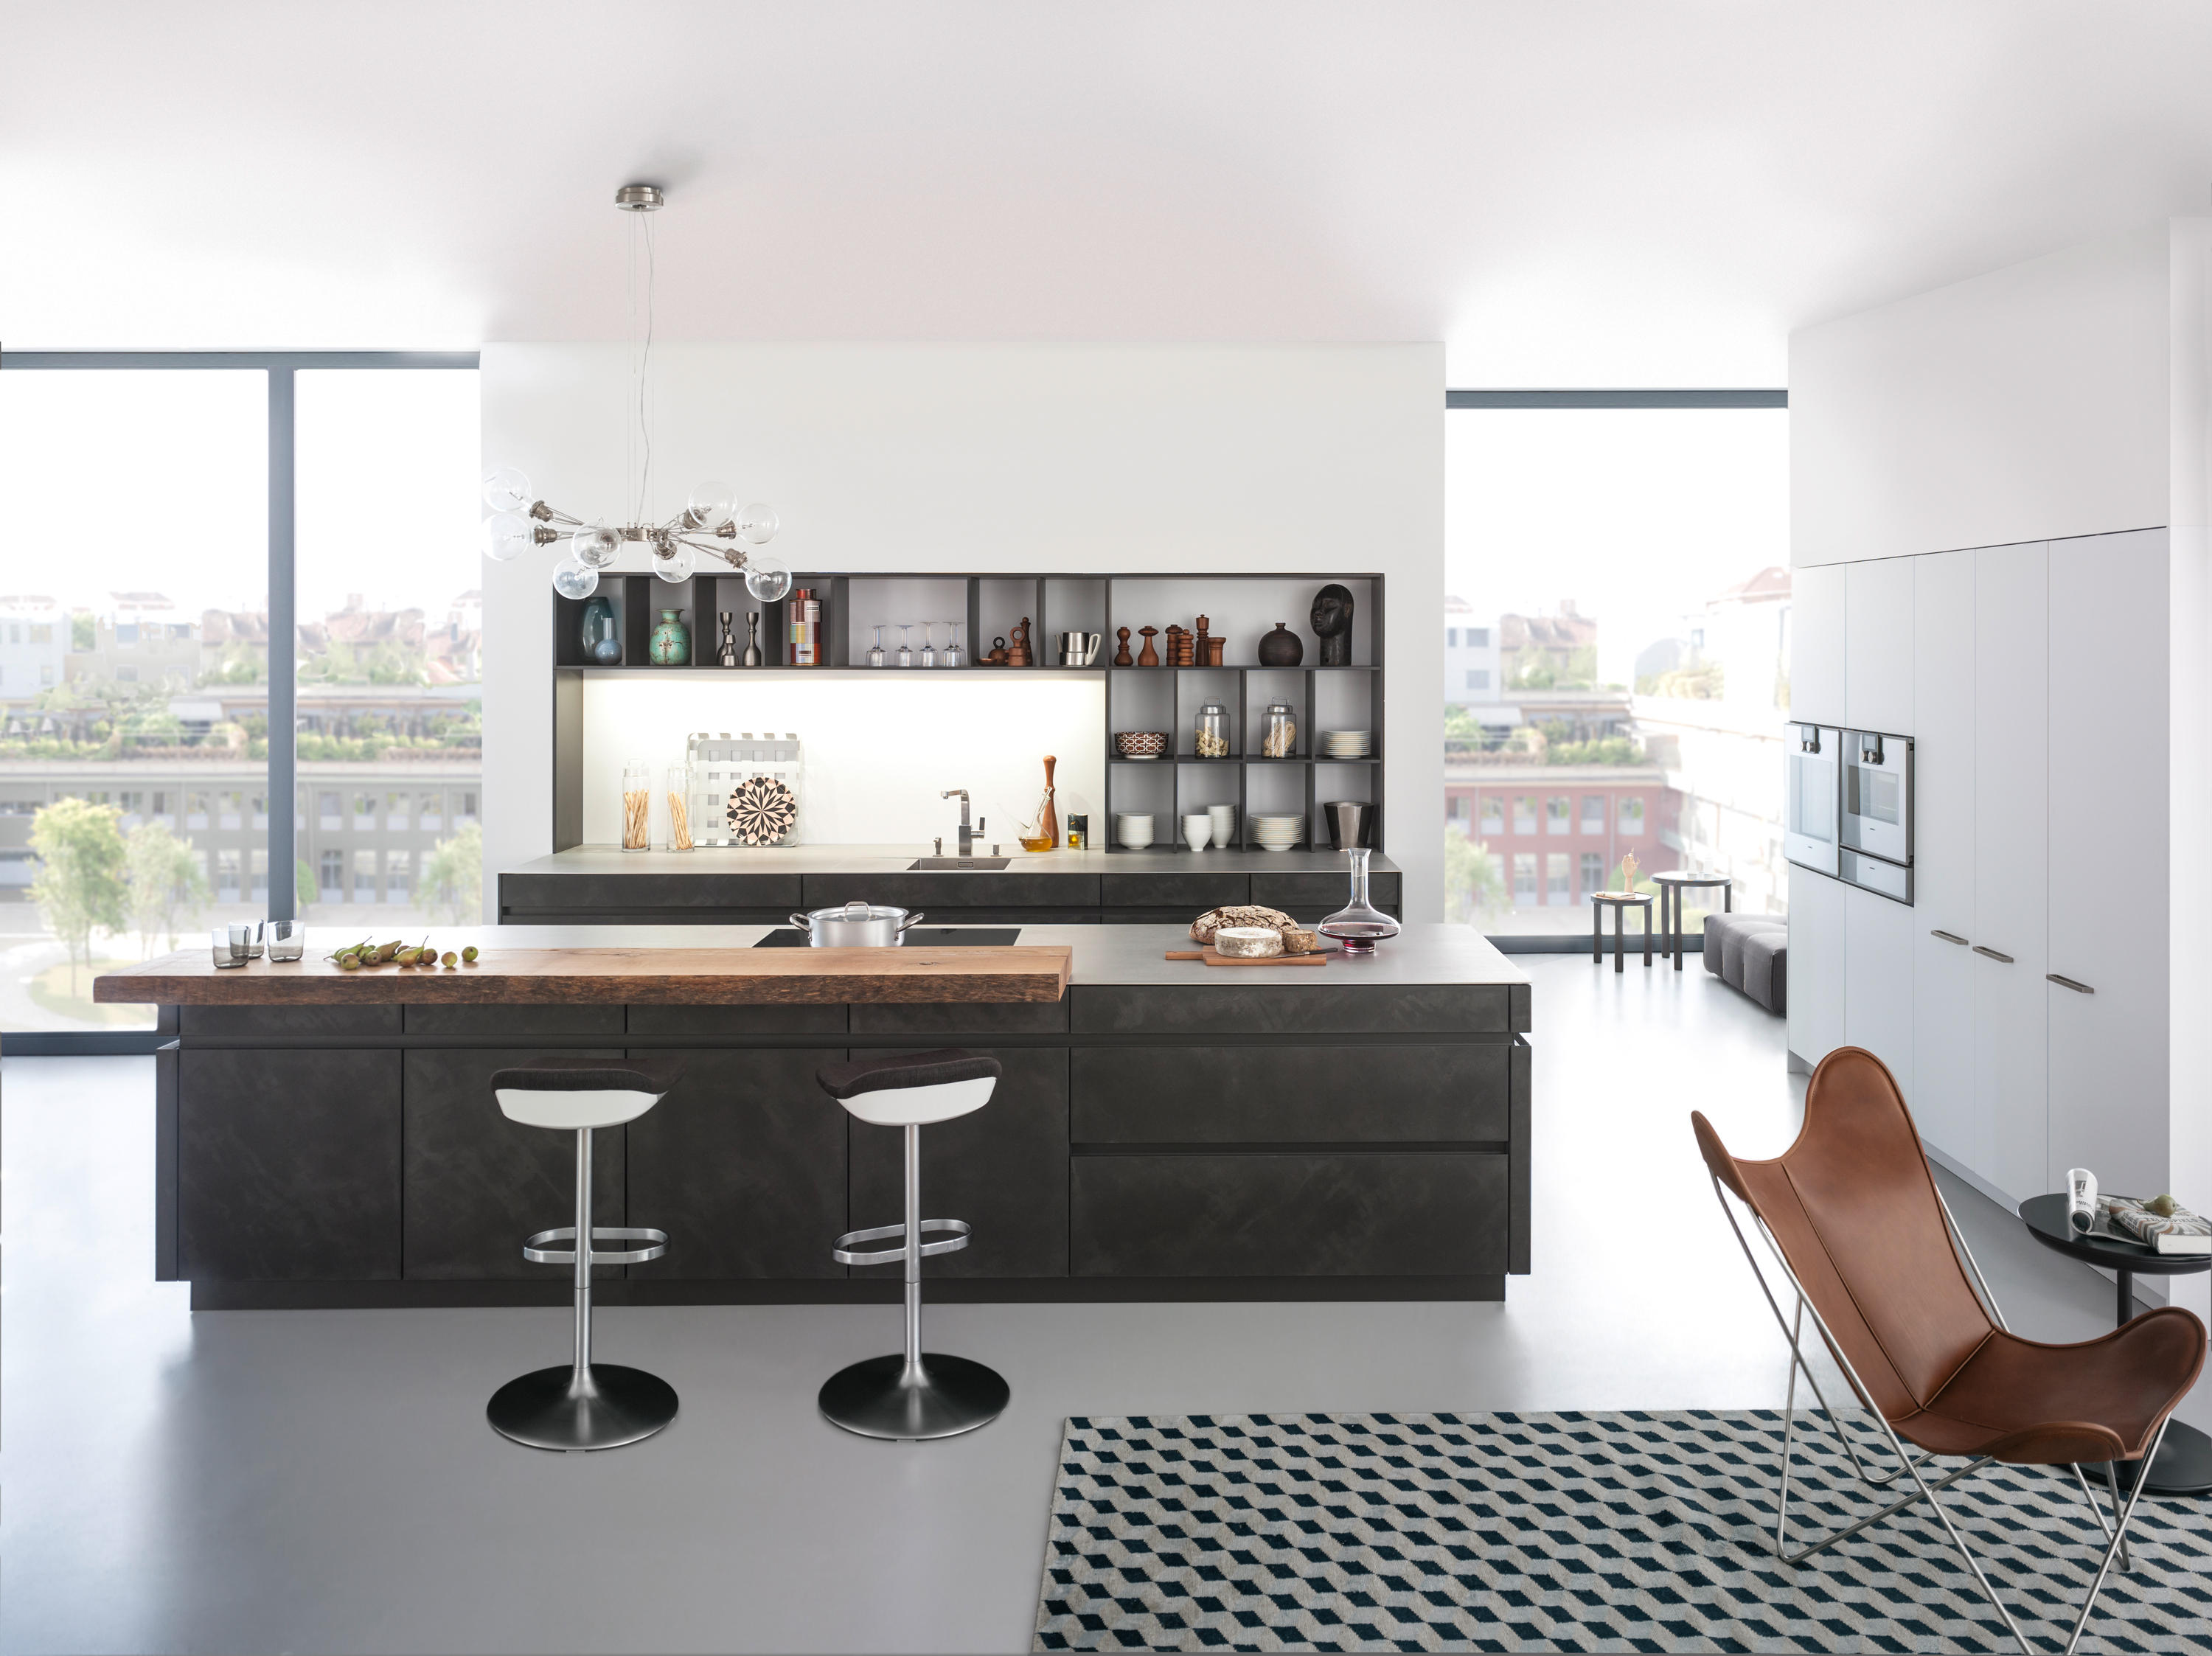 tocco concrete a fitted kitchens from leicht k chen ag. Black Bedroom Furniture Sets. Home Design Ideas